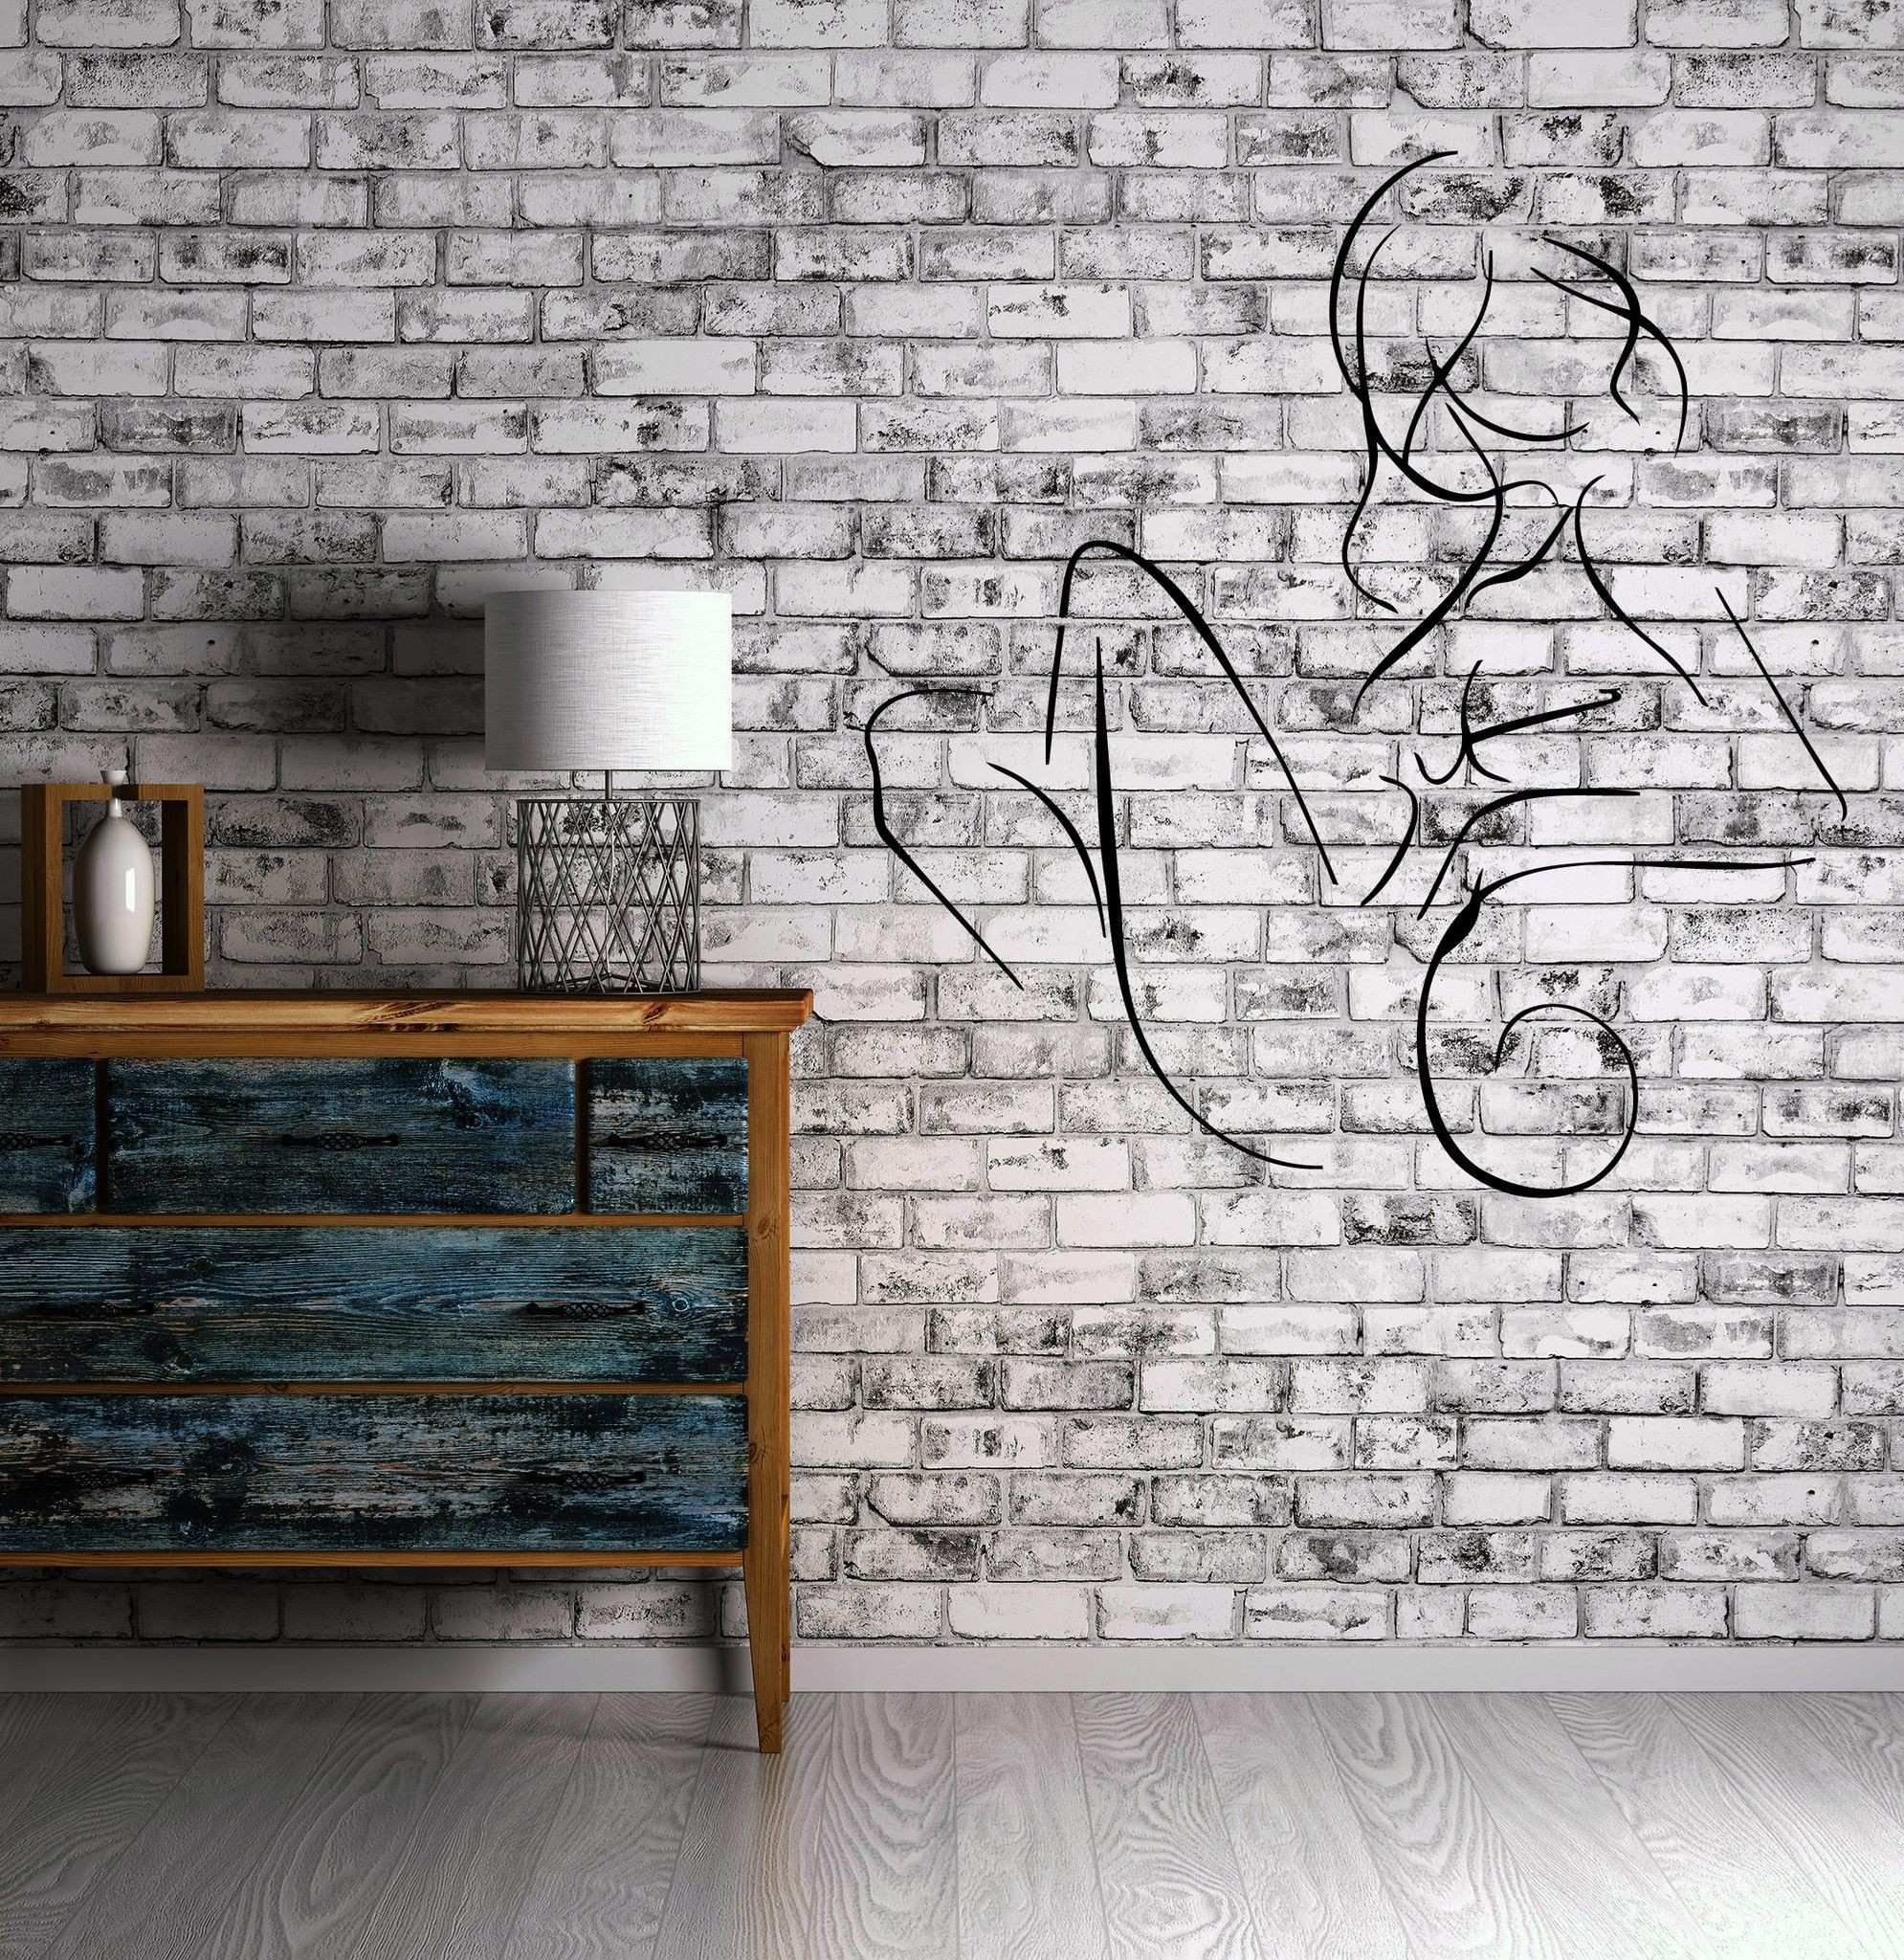 y Young Girl Naked Body Sketch Wall Decor Mural Vinyl Decal Art